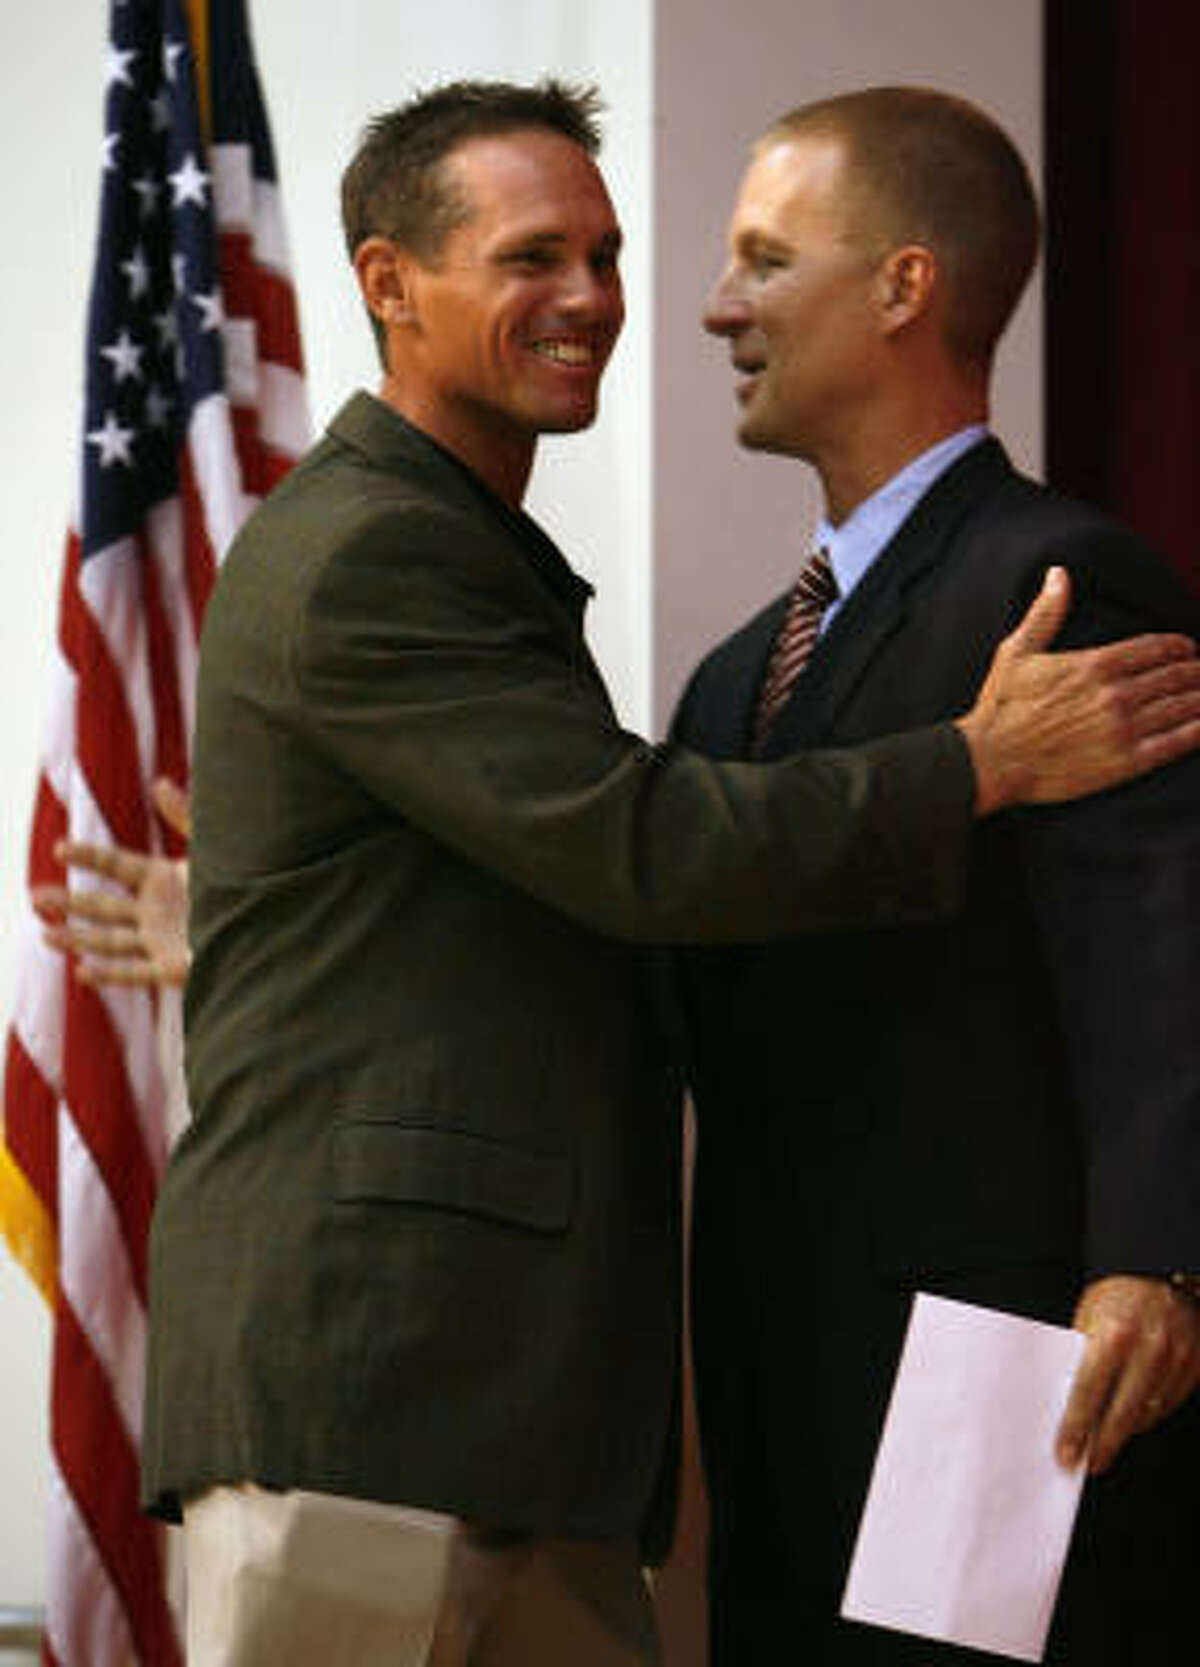 Former Houston Astro Craig Biggio (left) is greeted by St. Thomas High School's new athletic director Mike Metzel (right) during a school assembly announcing Biggio as the new baseball head coach and Donald Hollas as the new football head coach at St. Thomas High School on Tuesday in Houston.